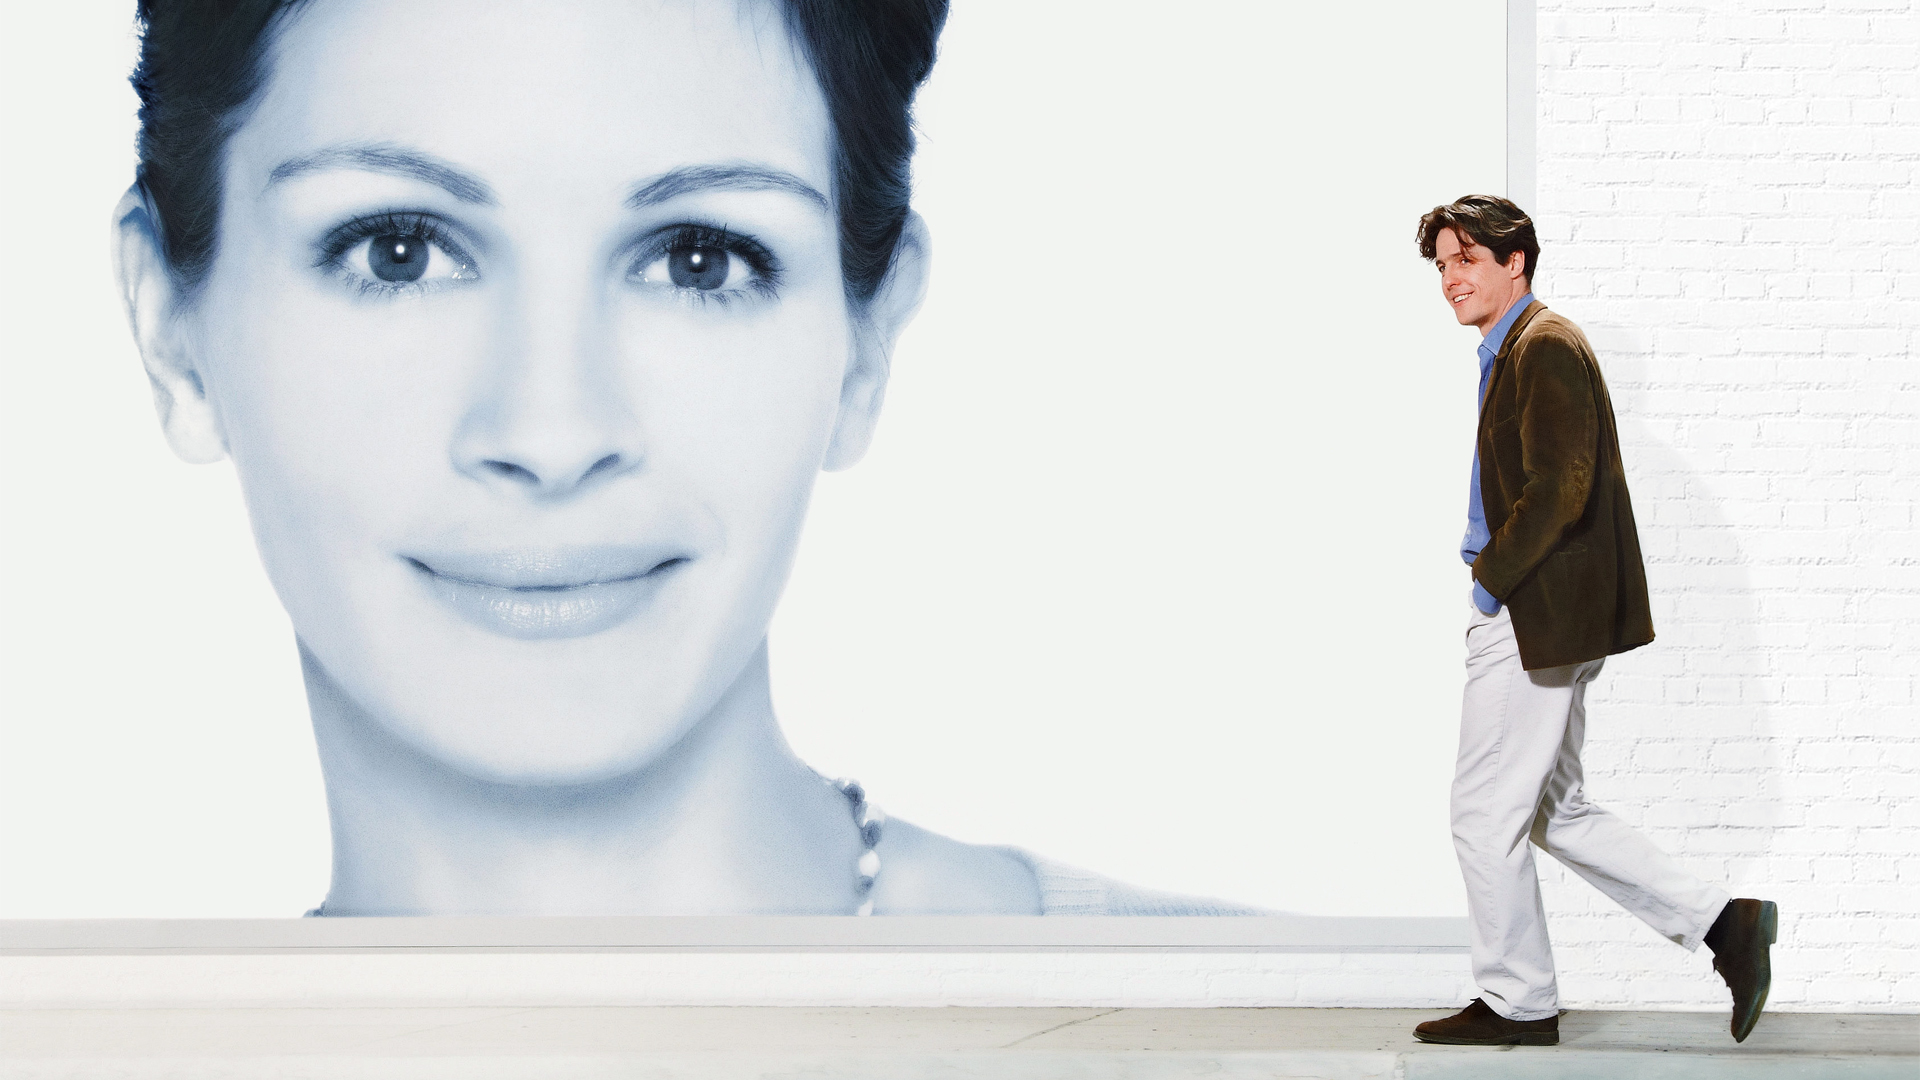 Notting hill - Julia roberts coup de foudre a notting hill ...